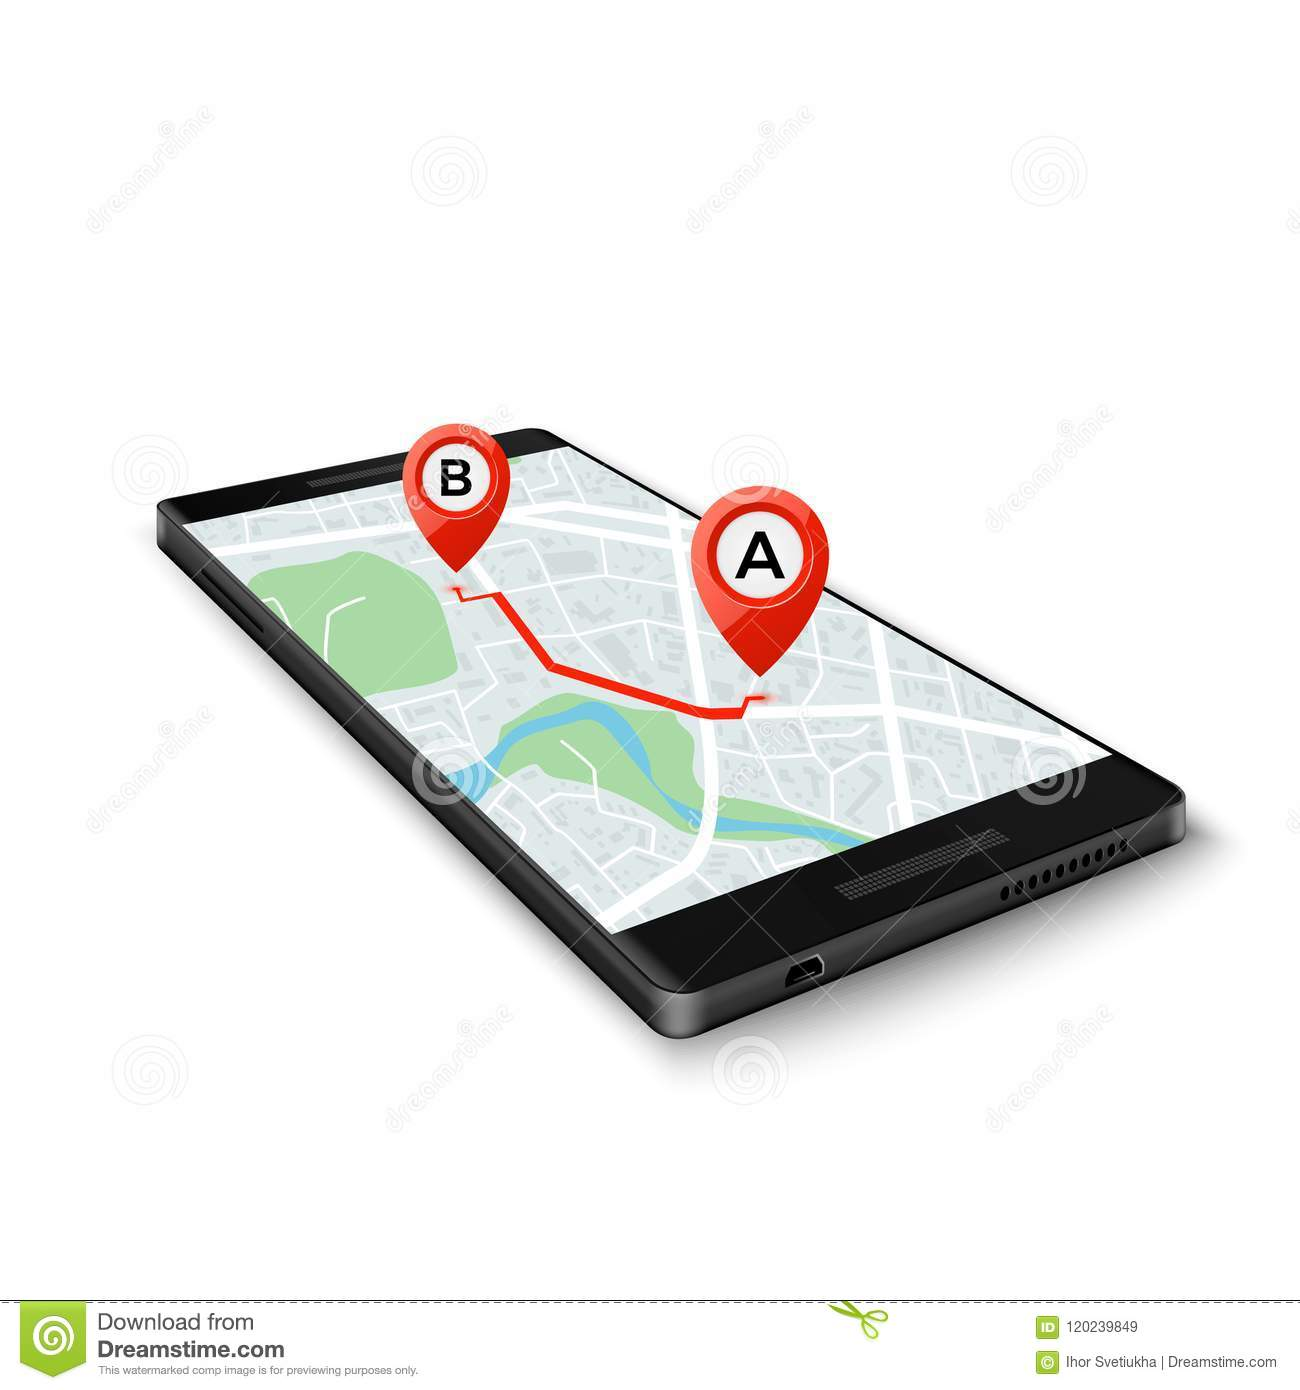 Mobile GPS system concept. Mobile GPS app interface. Map on phone screen with route markers. Vector illustration